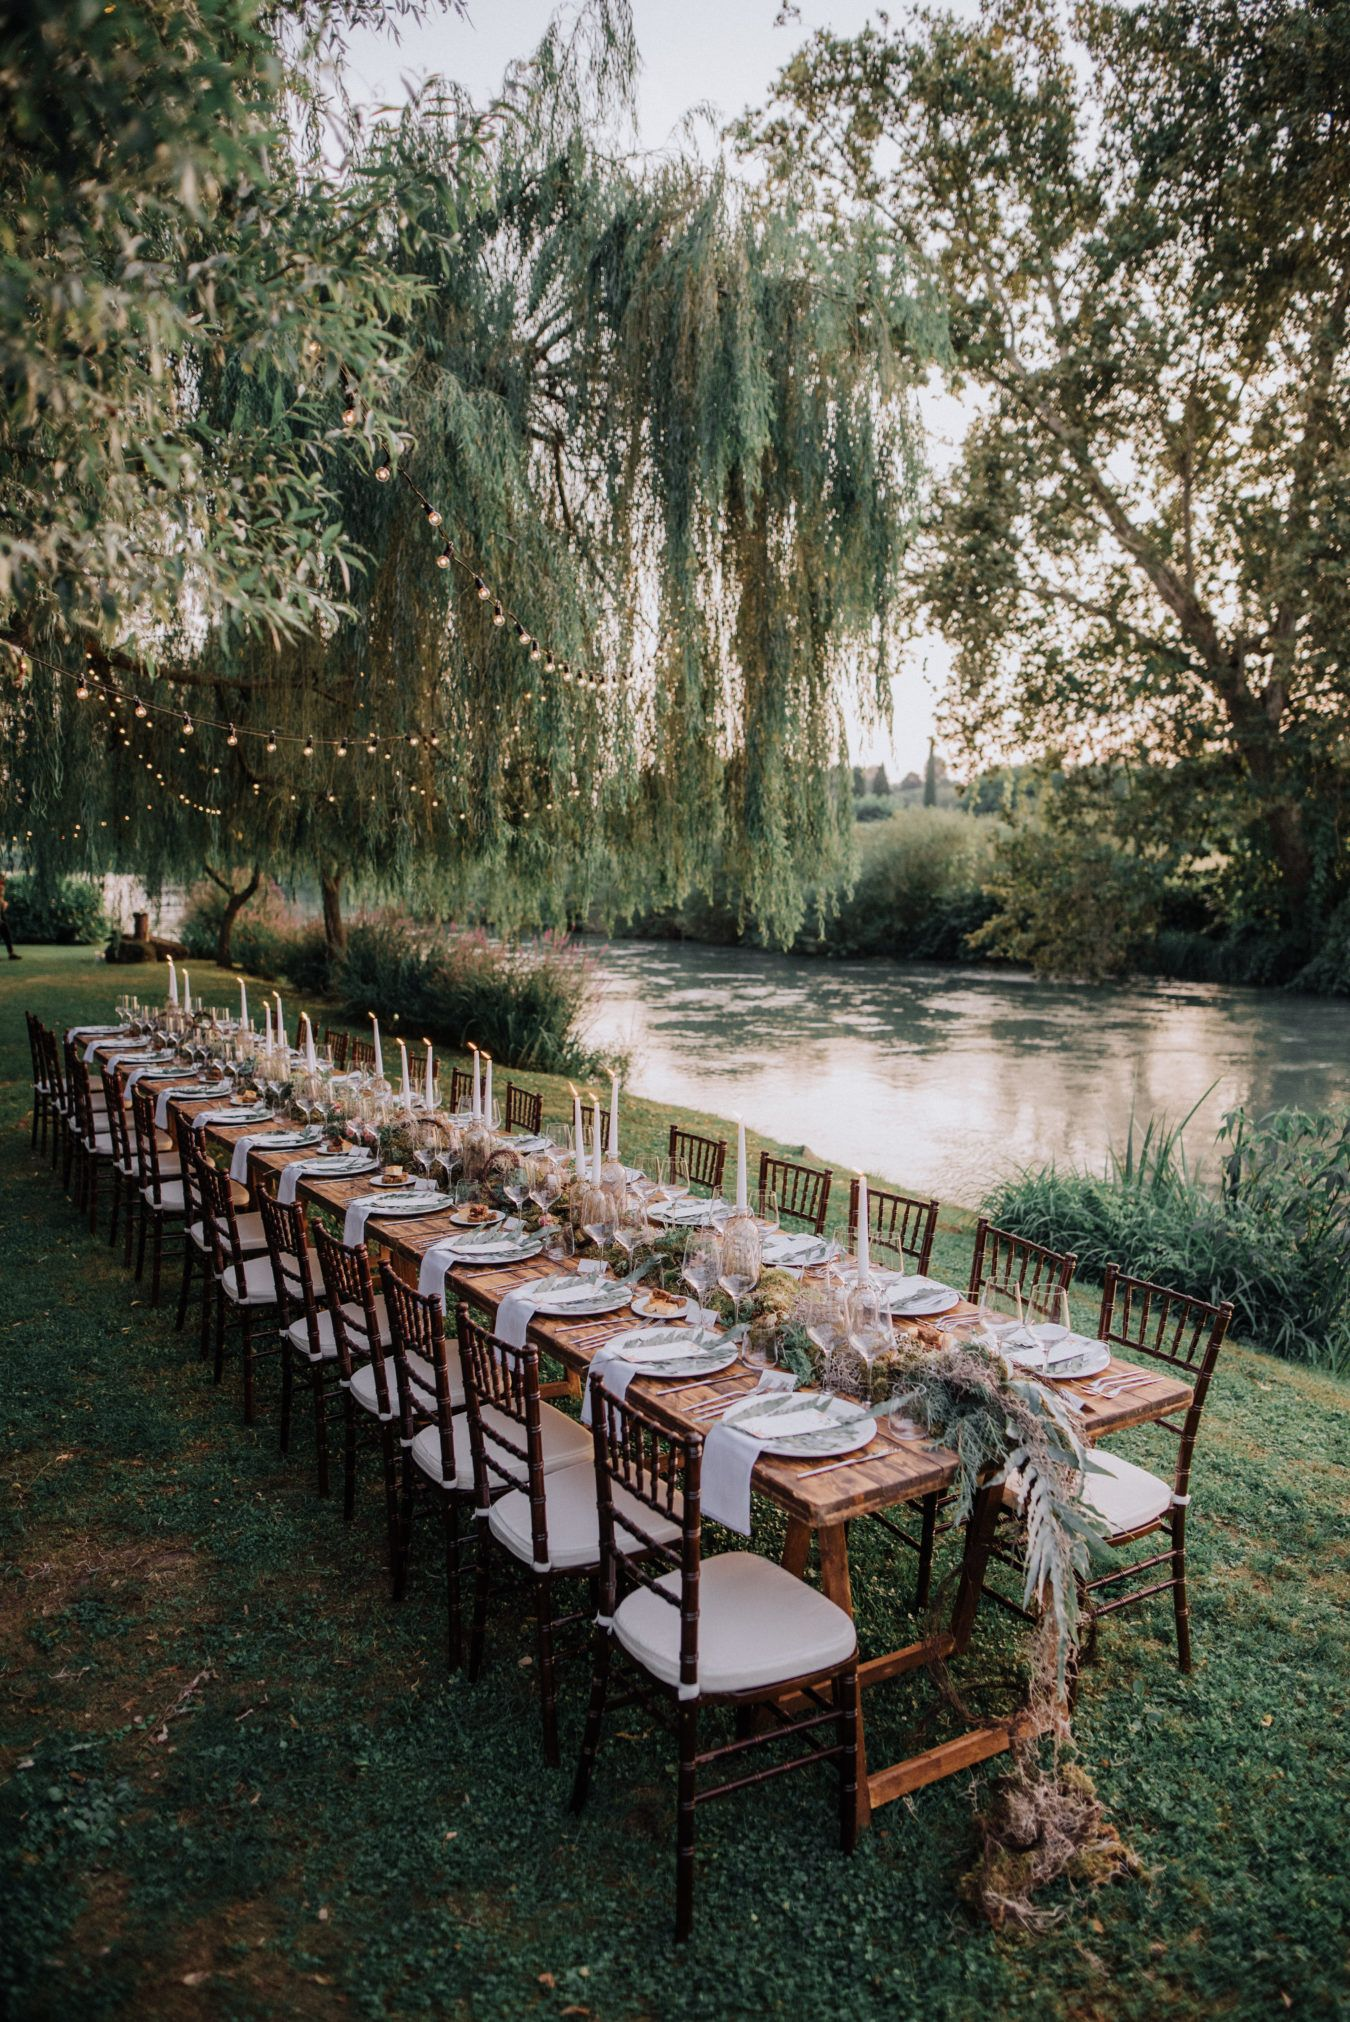 Romantic Wedding by the Mincio River in Northern Italy ⋆ Ruffled #weddings